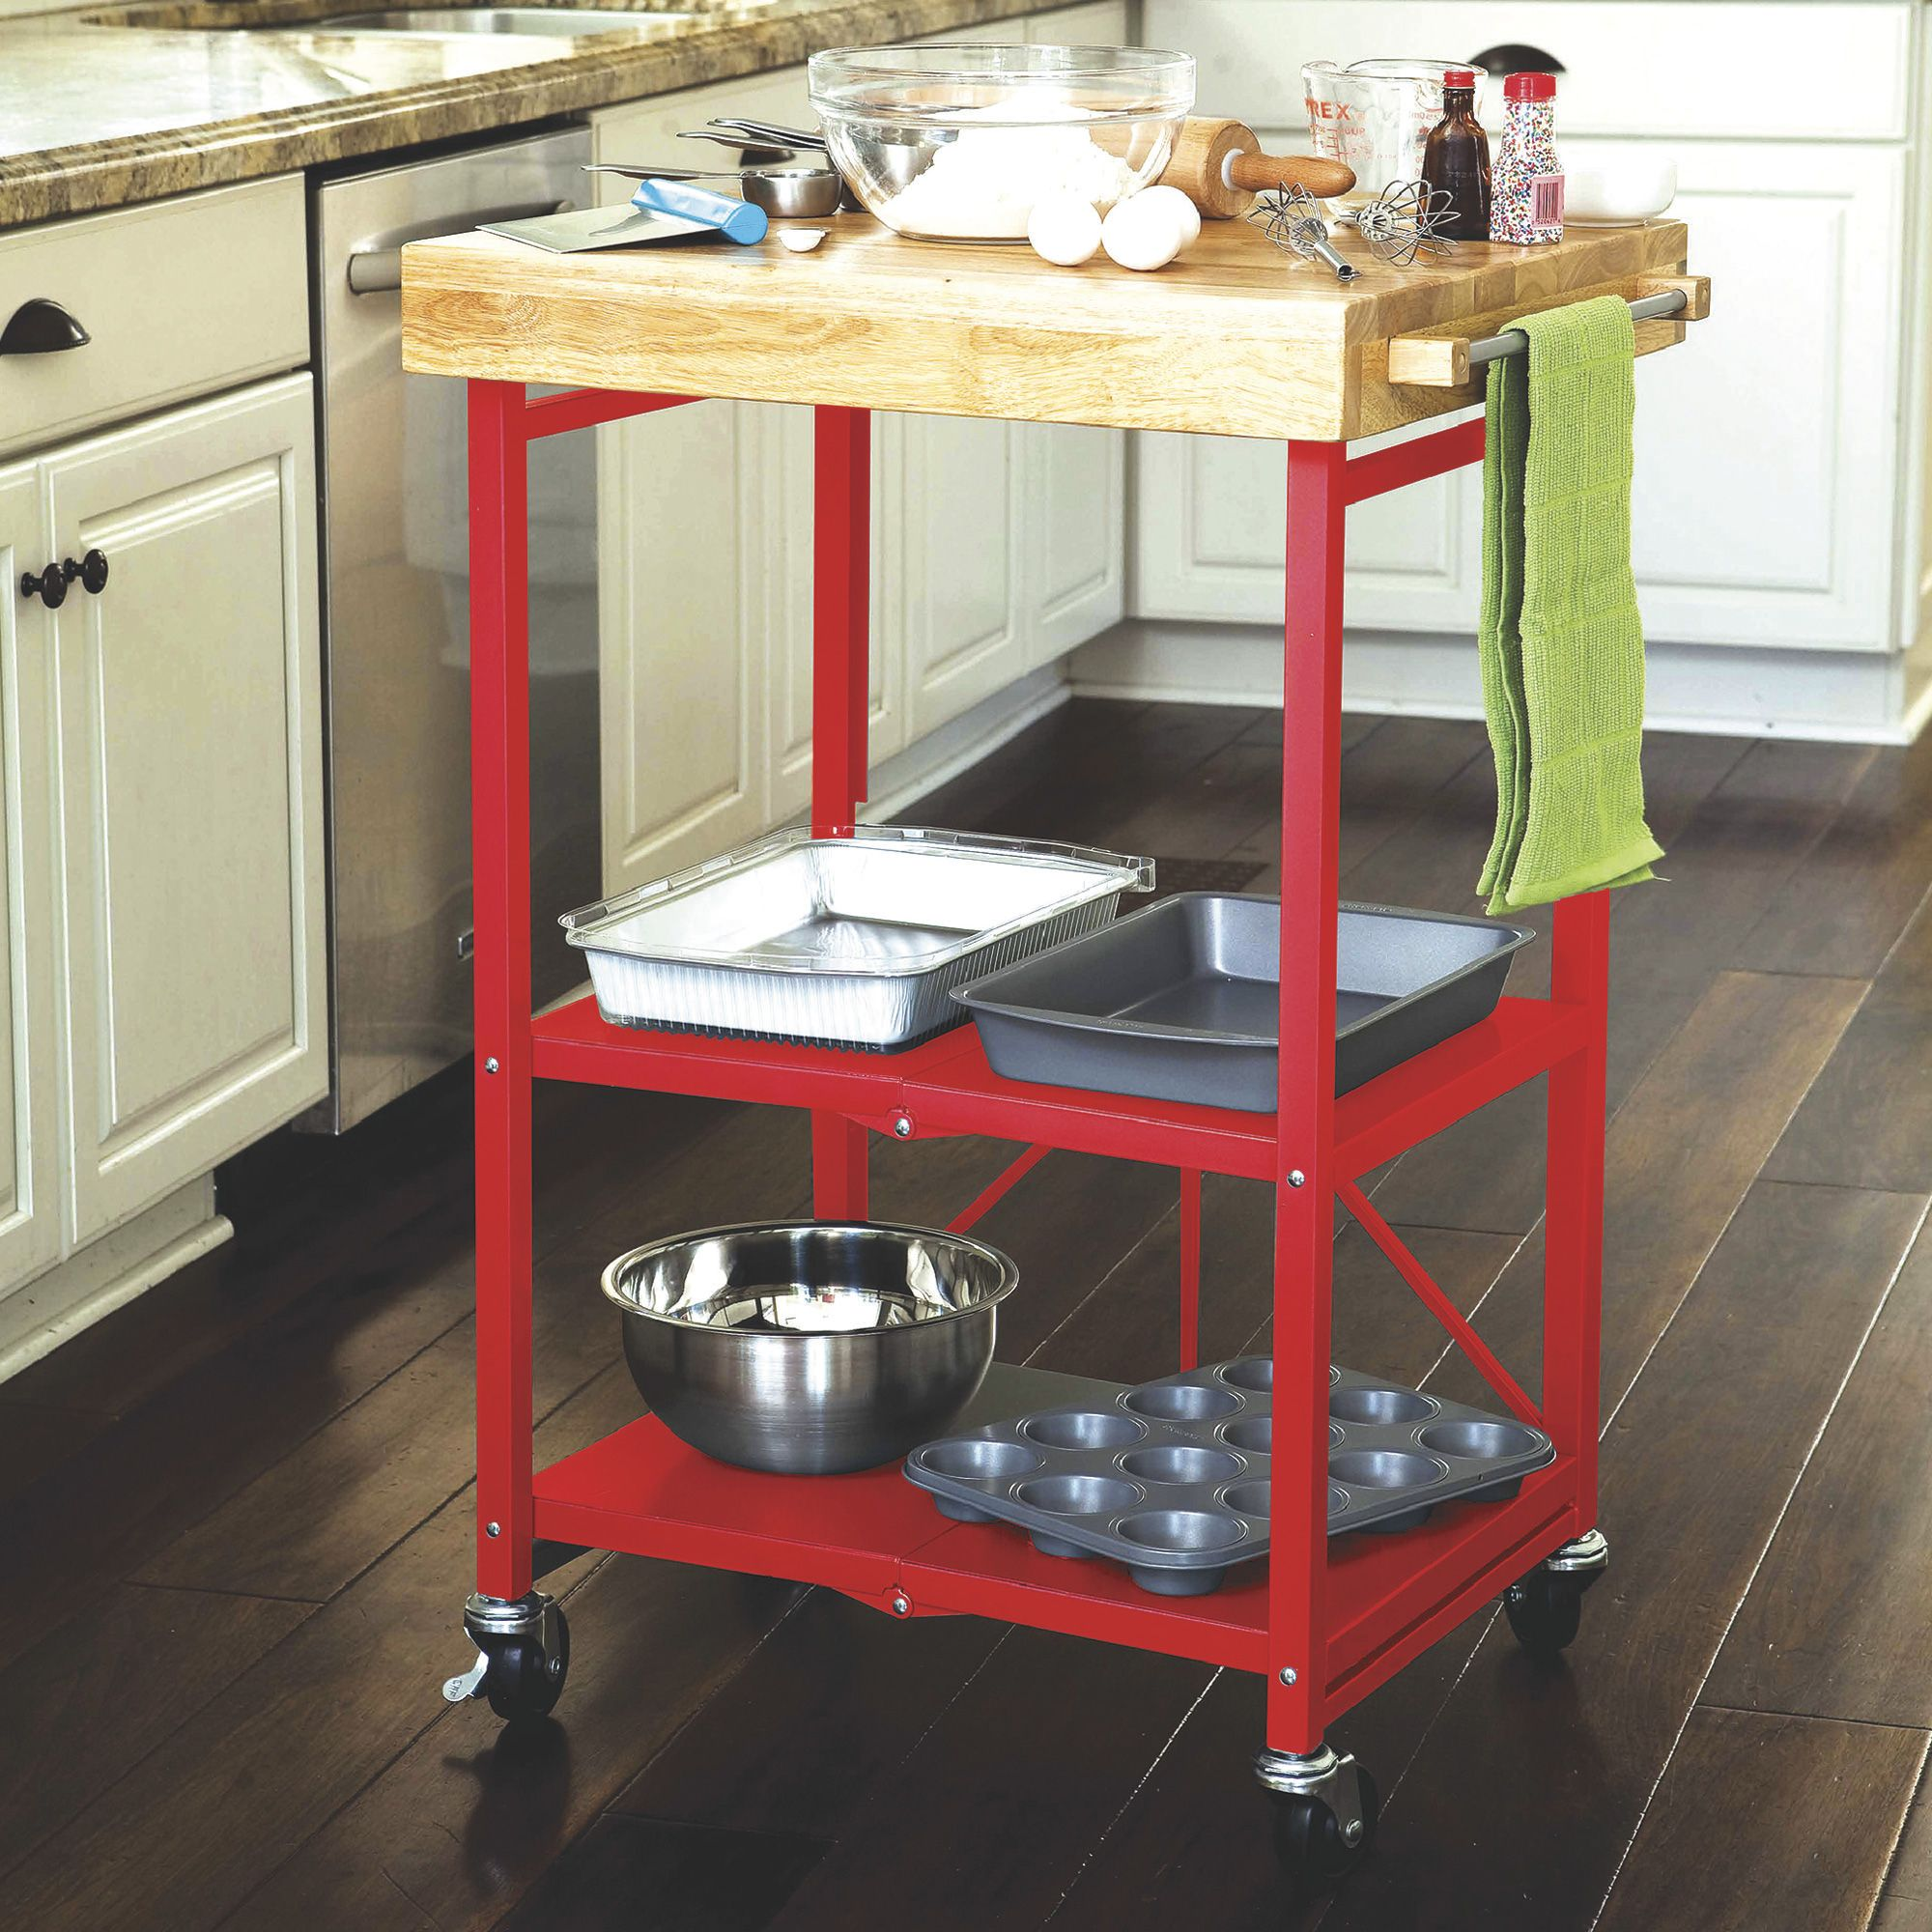 Origami Foldable Steel Kitchen Cart With Wood Butcher Block Top Red Www Kotulas Com Free Shipping Kitchen Cart Decorative Storage Simple Storage